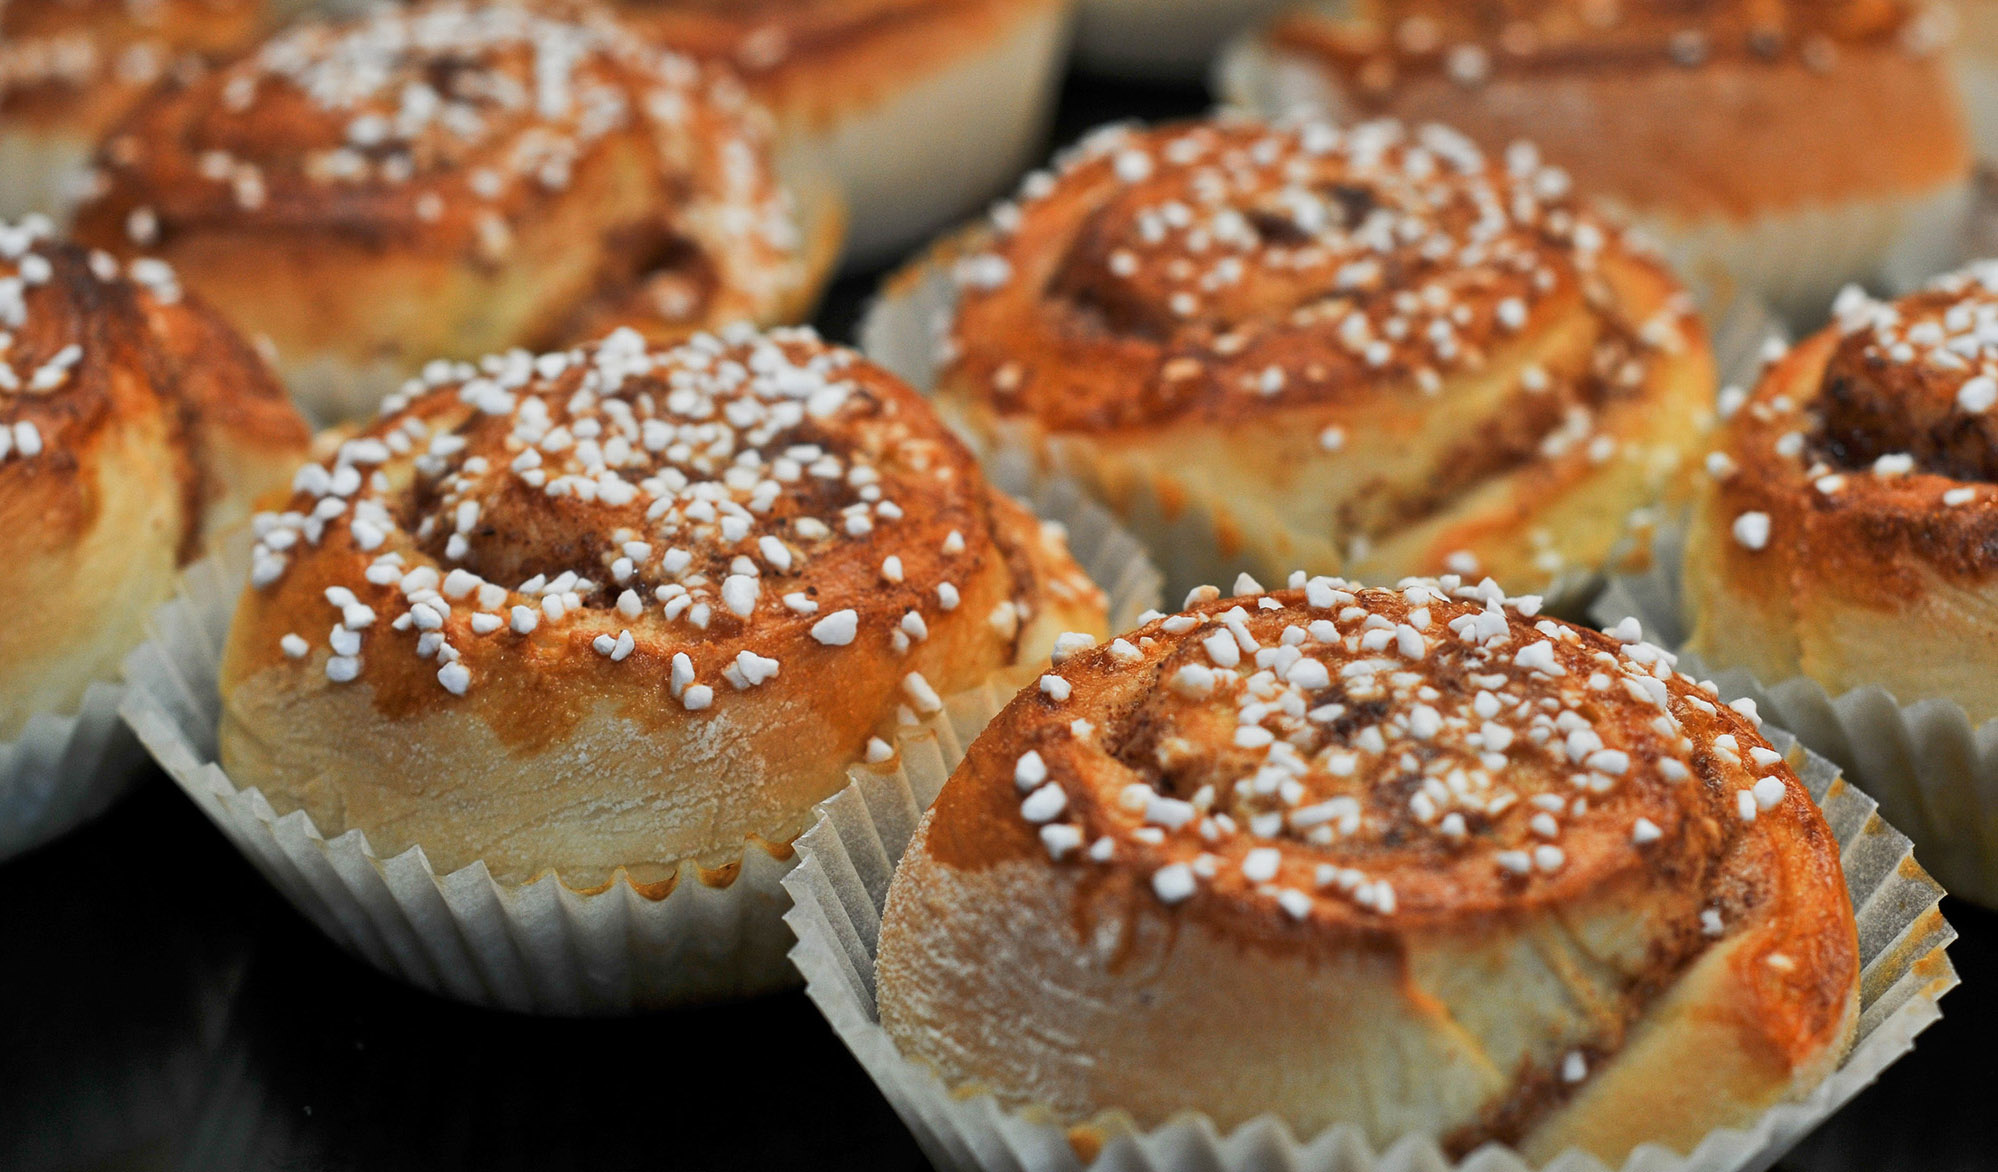 Swedish pastry Cinnamon buns called Kanelbullar